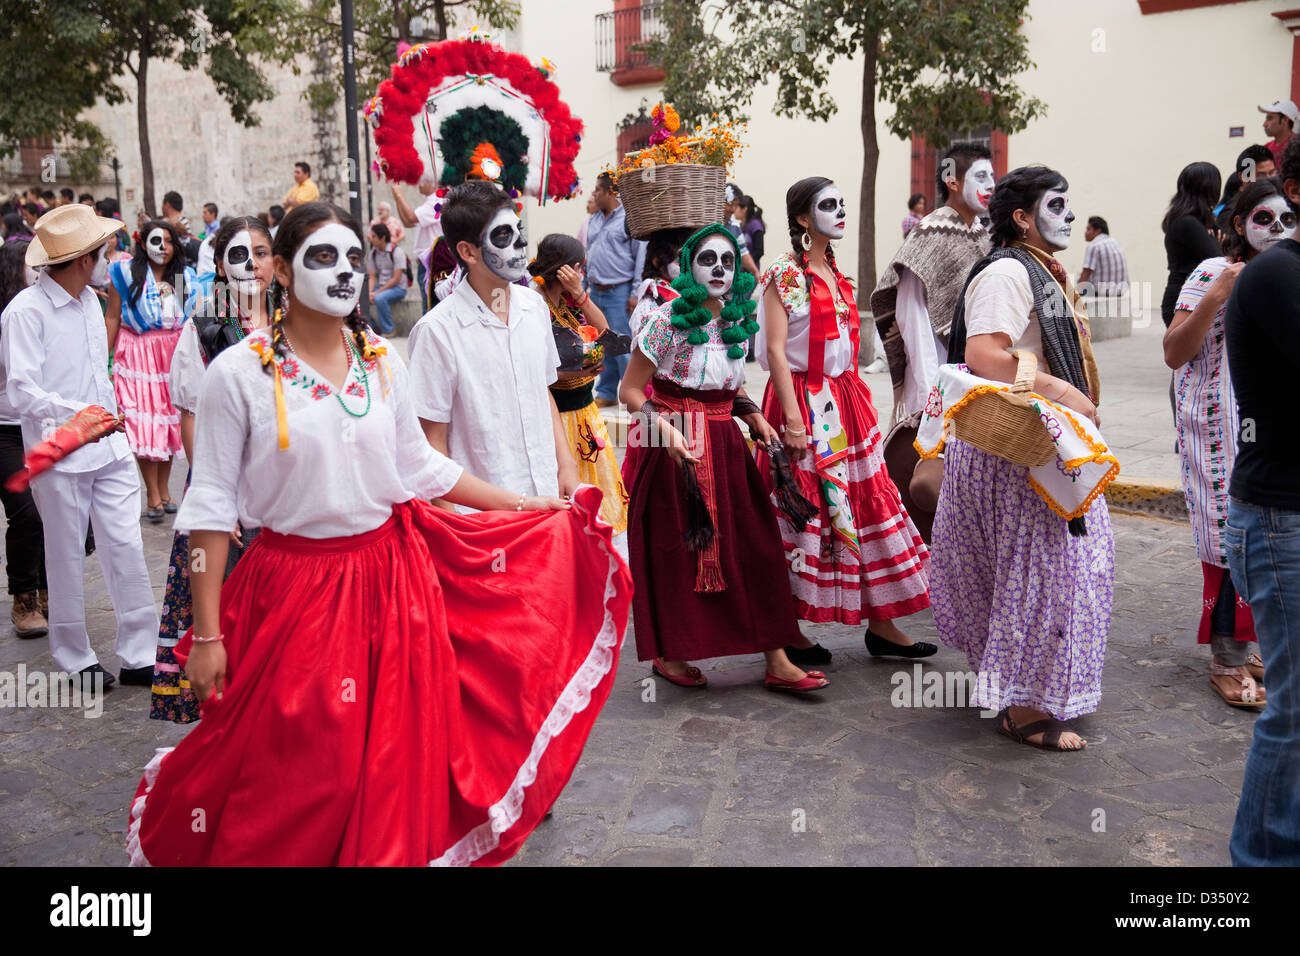 fd4e7c49ab6 Day of the Dead parade with participants in traditional clothing and ...